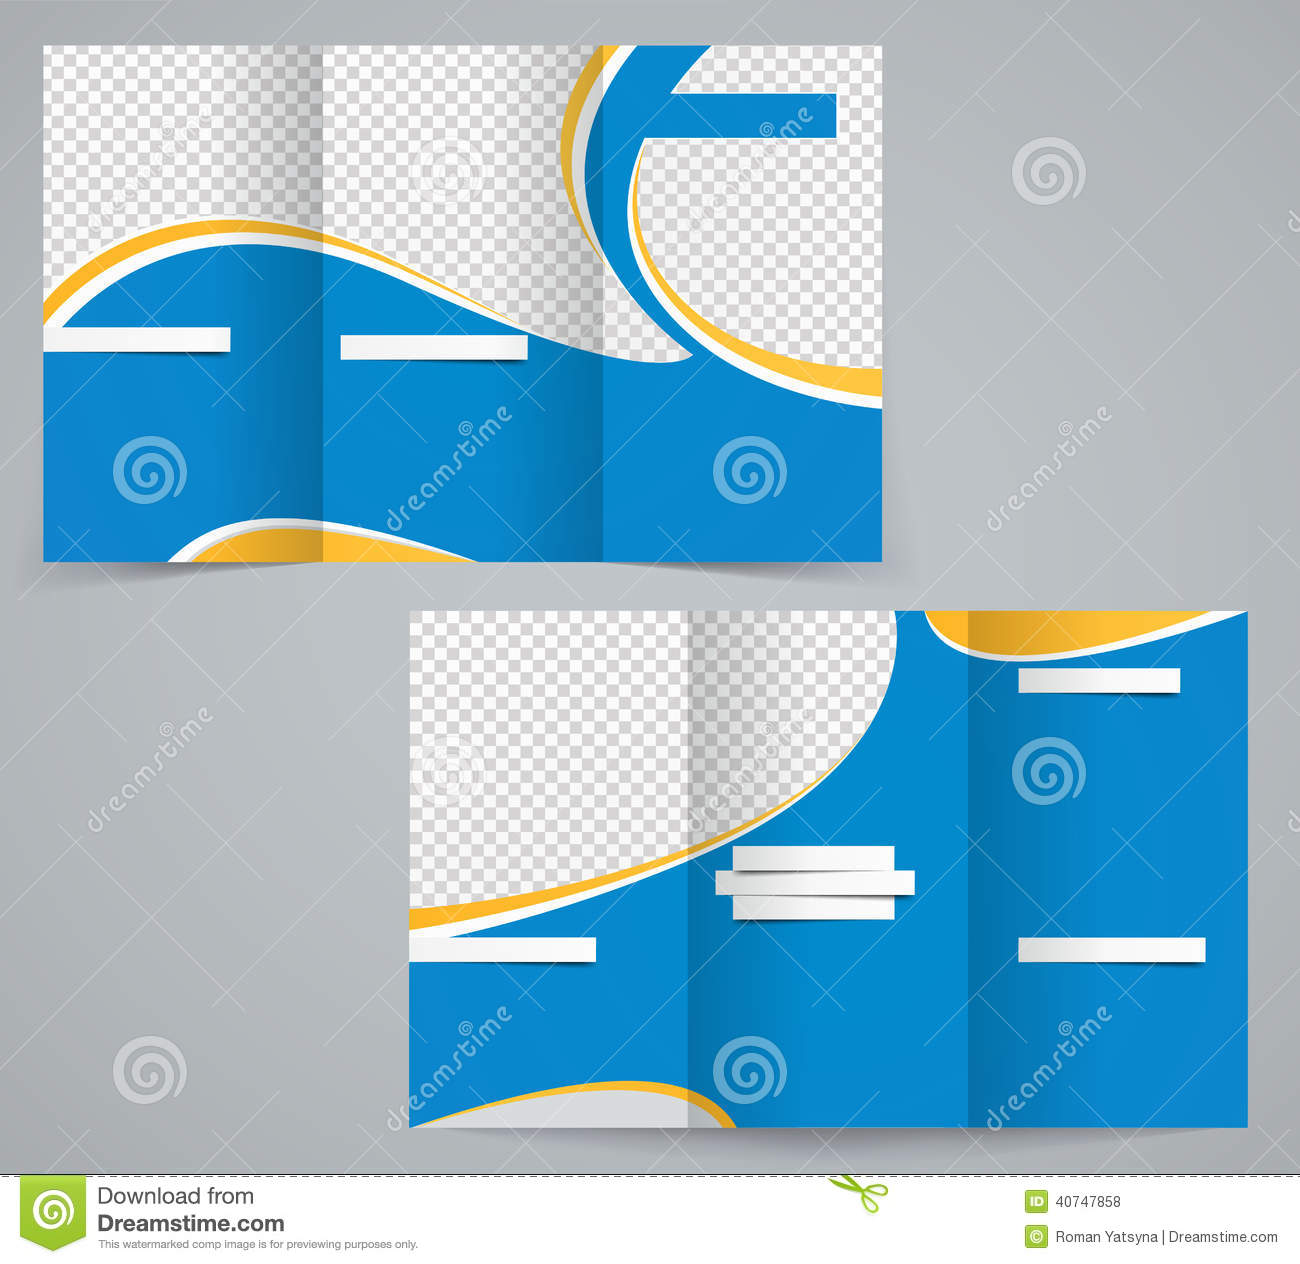 Trifold Business Brochure Template Royalty Free Image – Business Brochure Design